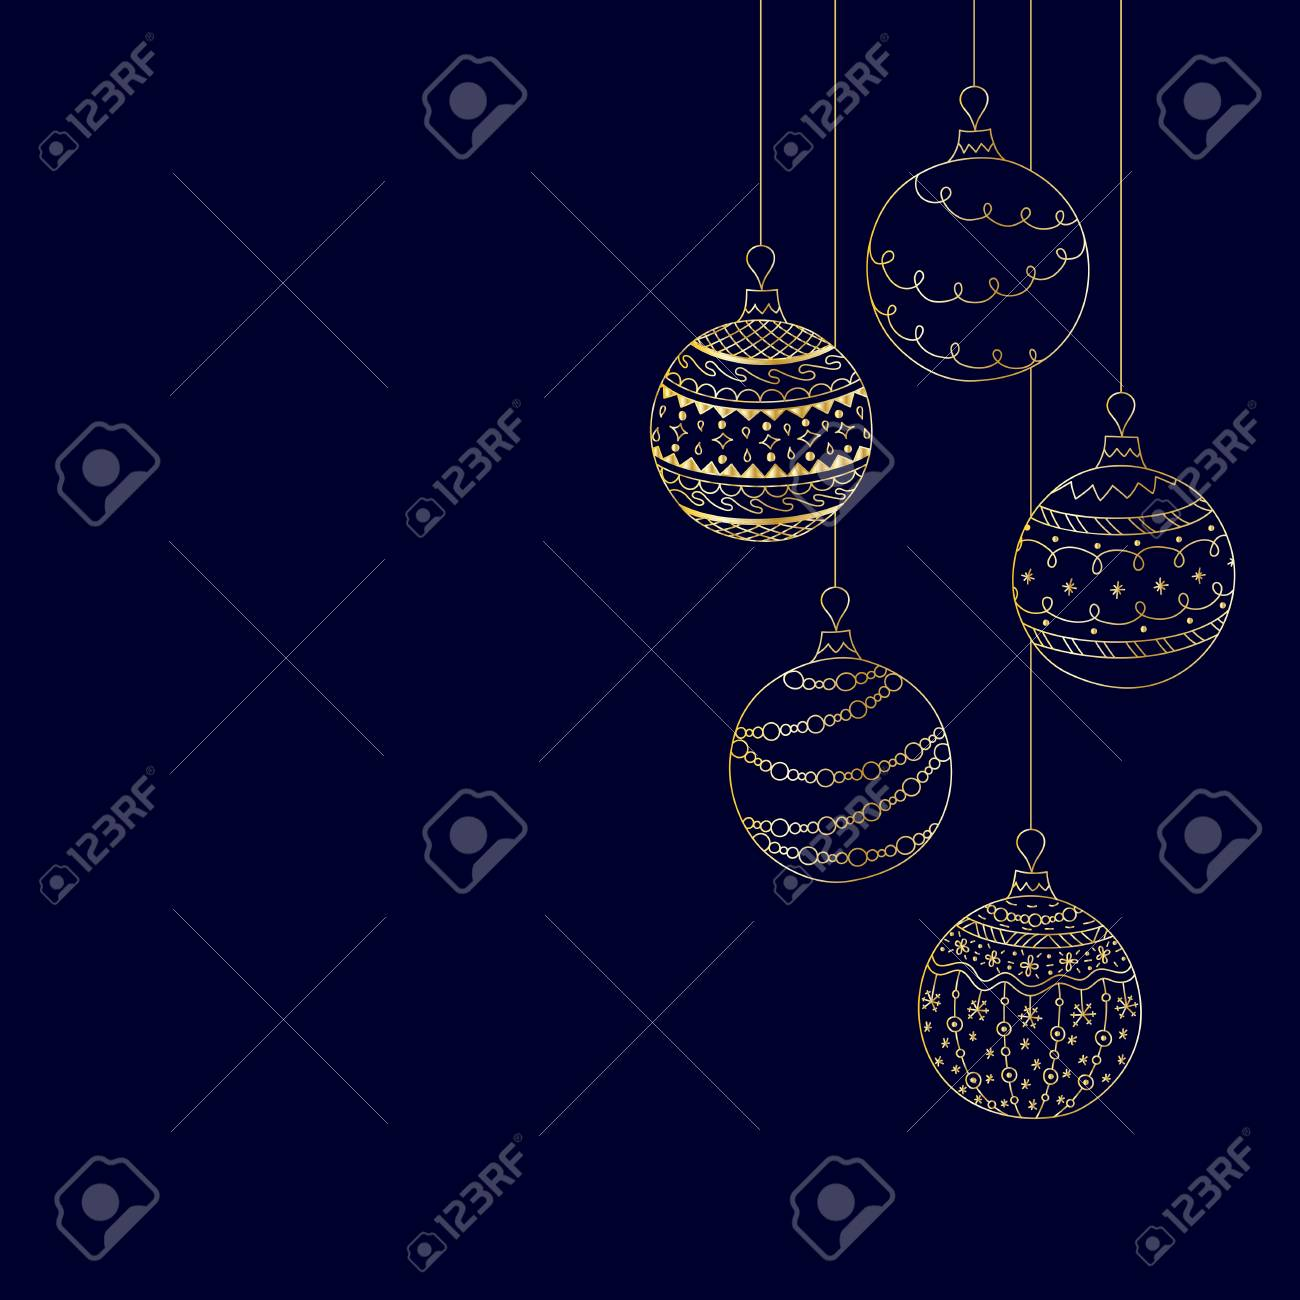 Christmas Invitation Background Gold.Vector Christmas Invitation Card From Five Gold Christmas Ball